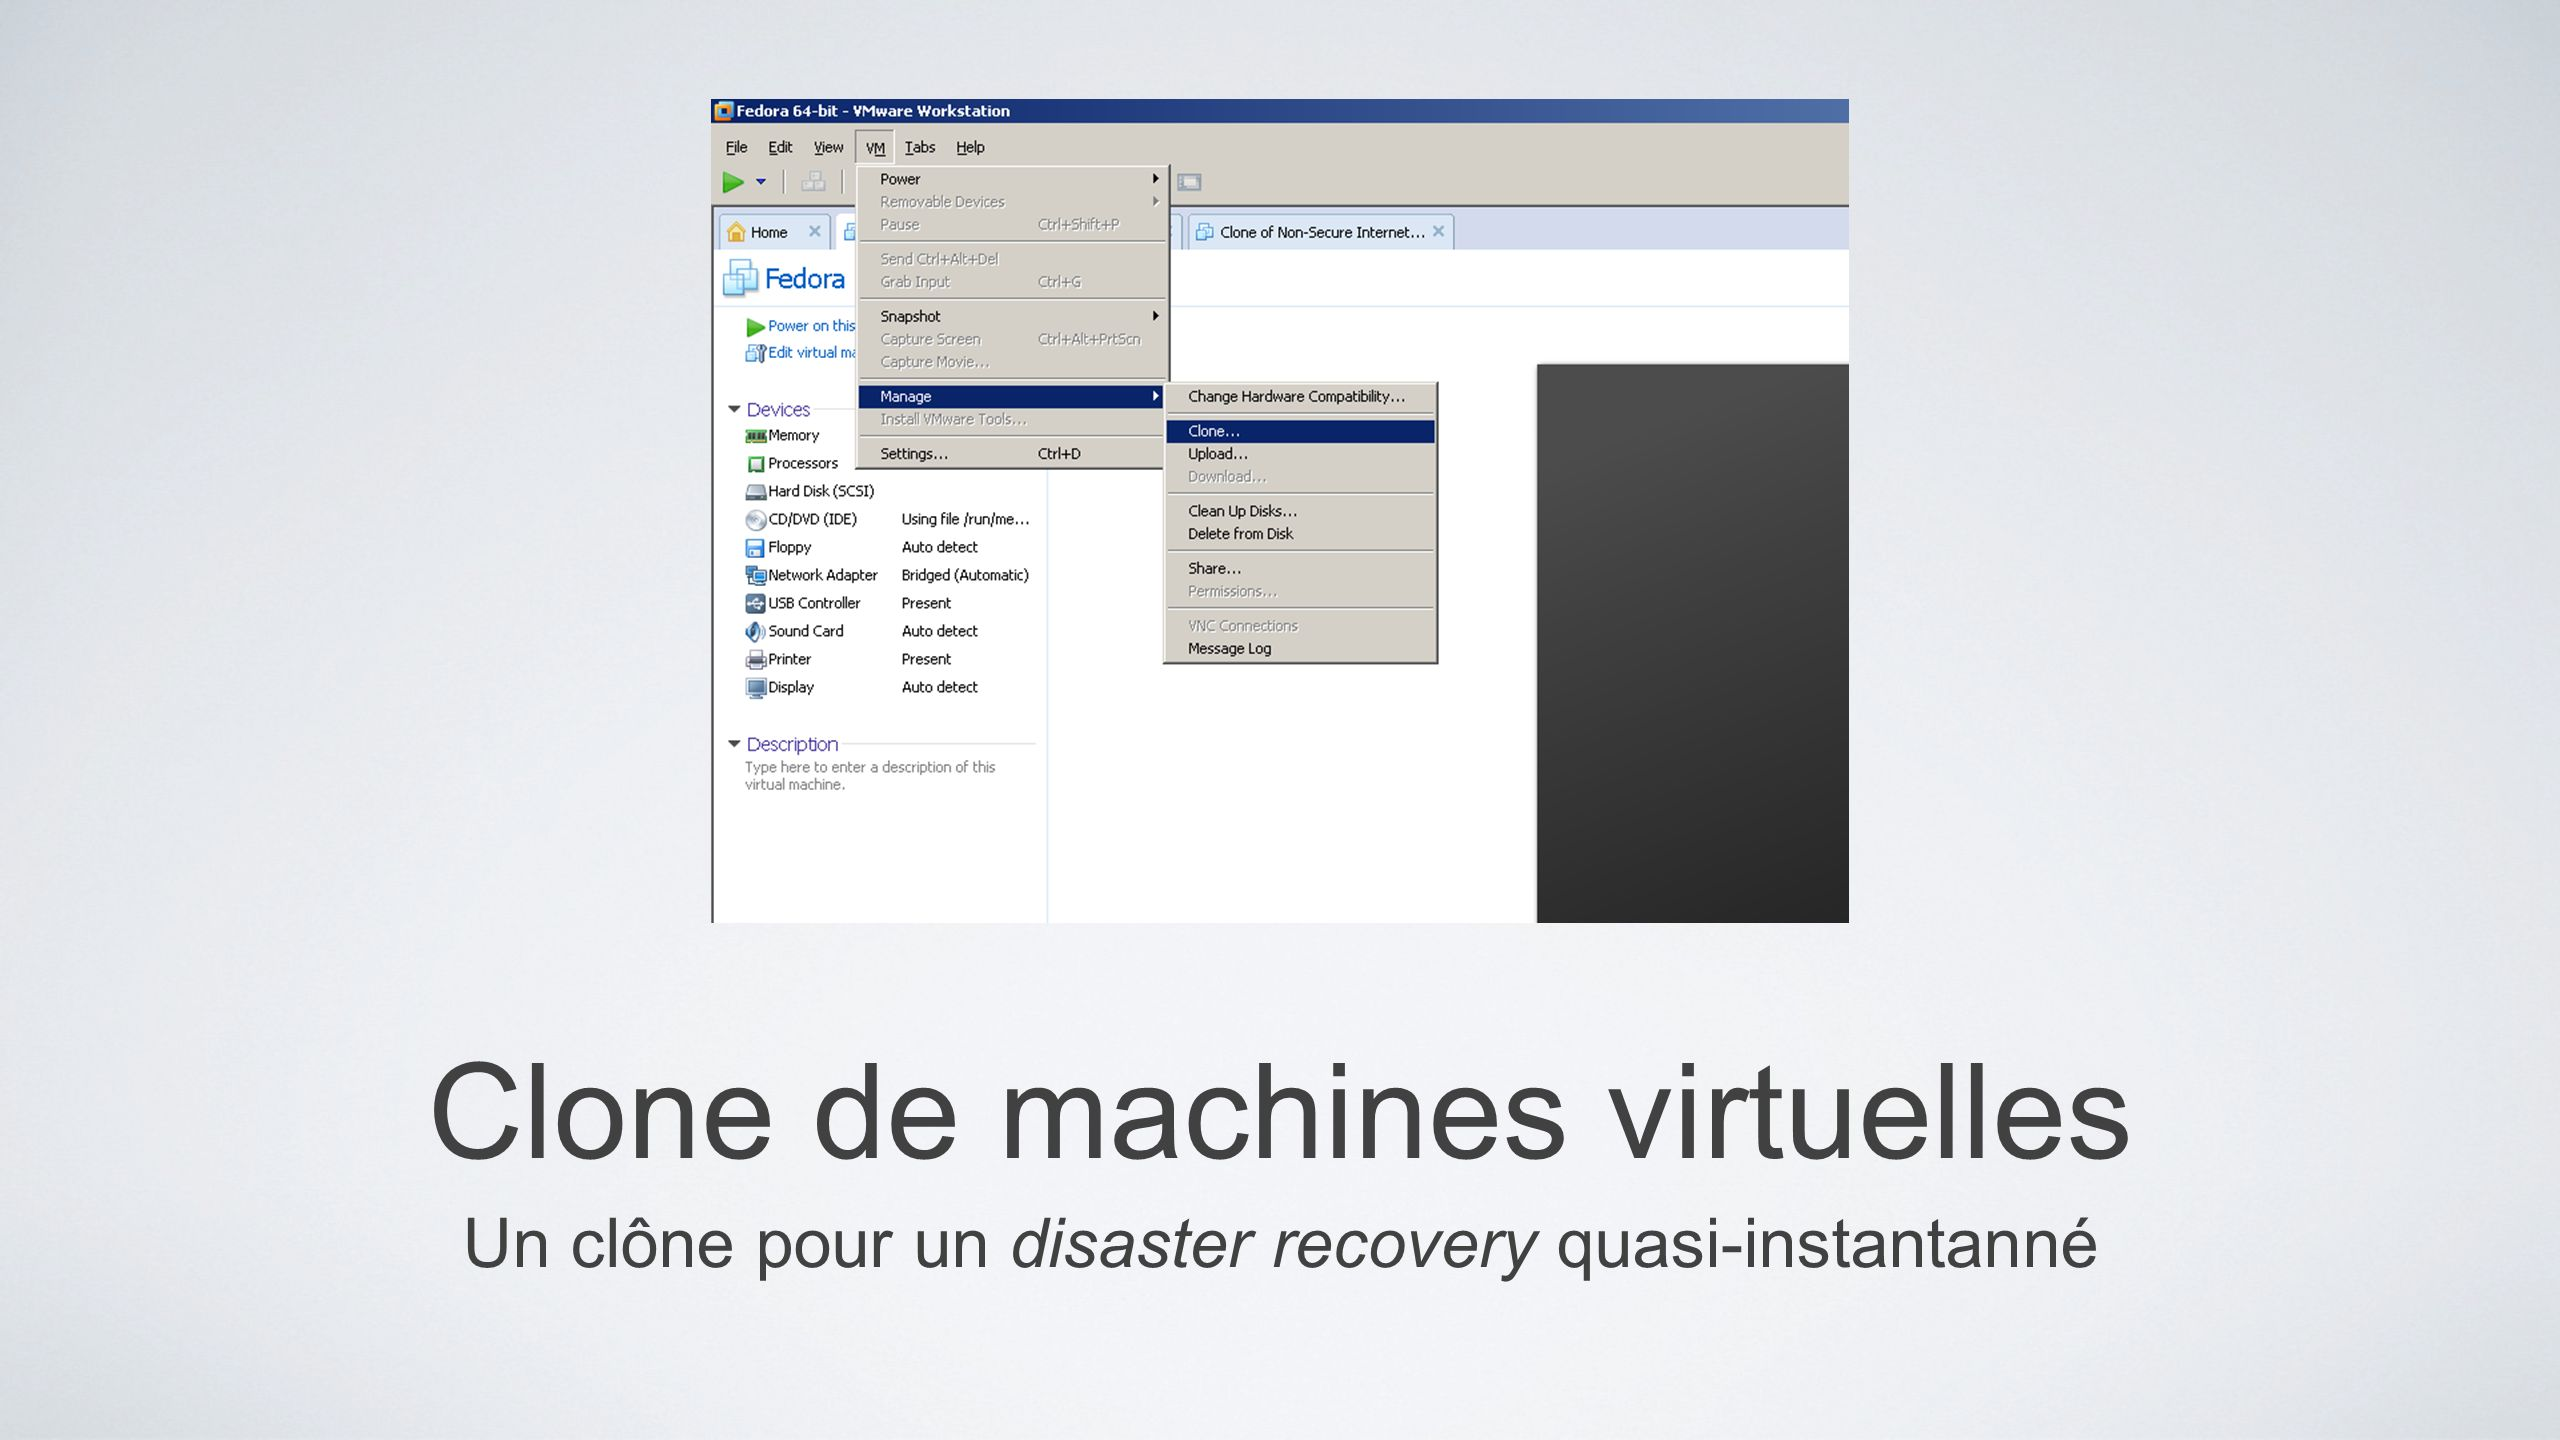 Clone de machines virtuelles